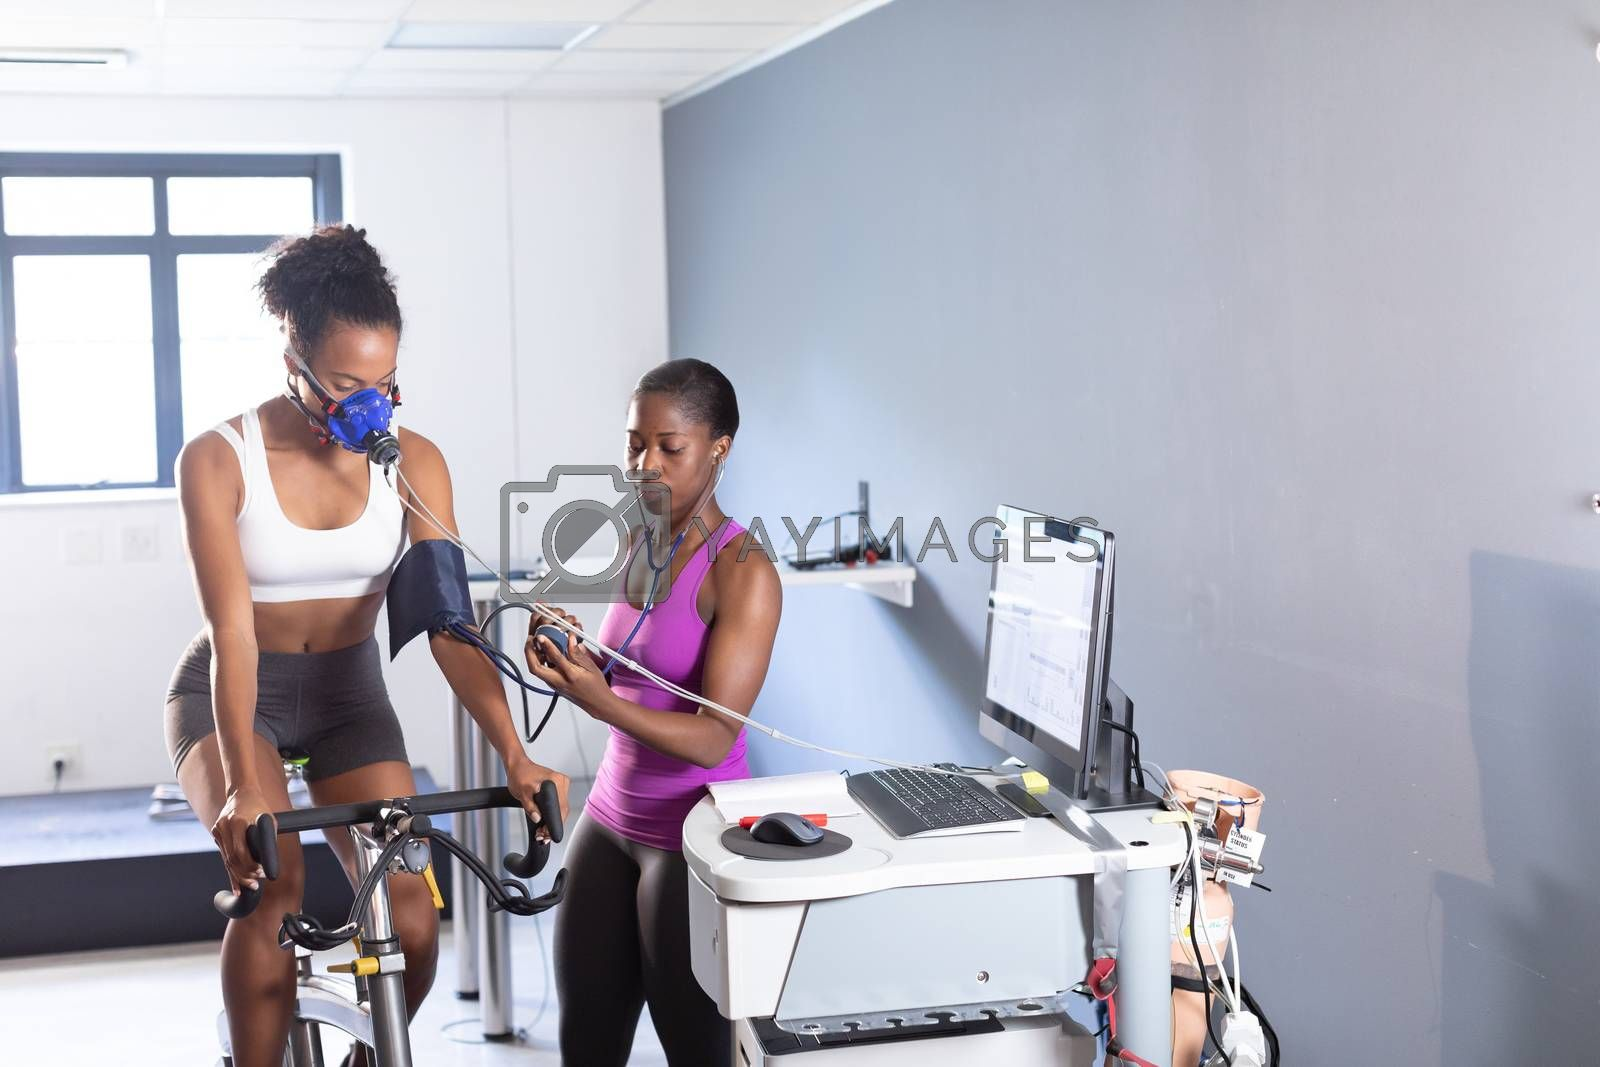 Front view of an African-American athletic woman doing a fitness test using a mask connected to a monitor while riding an exercise bike and an African-American woman measuring her blood pressure inside a room at a sports center. Bright modern gym with fit healthy people working out and training. Athlete testing themselves with cardiovascular fitness test on exercise bike